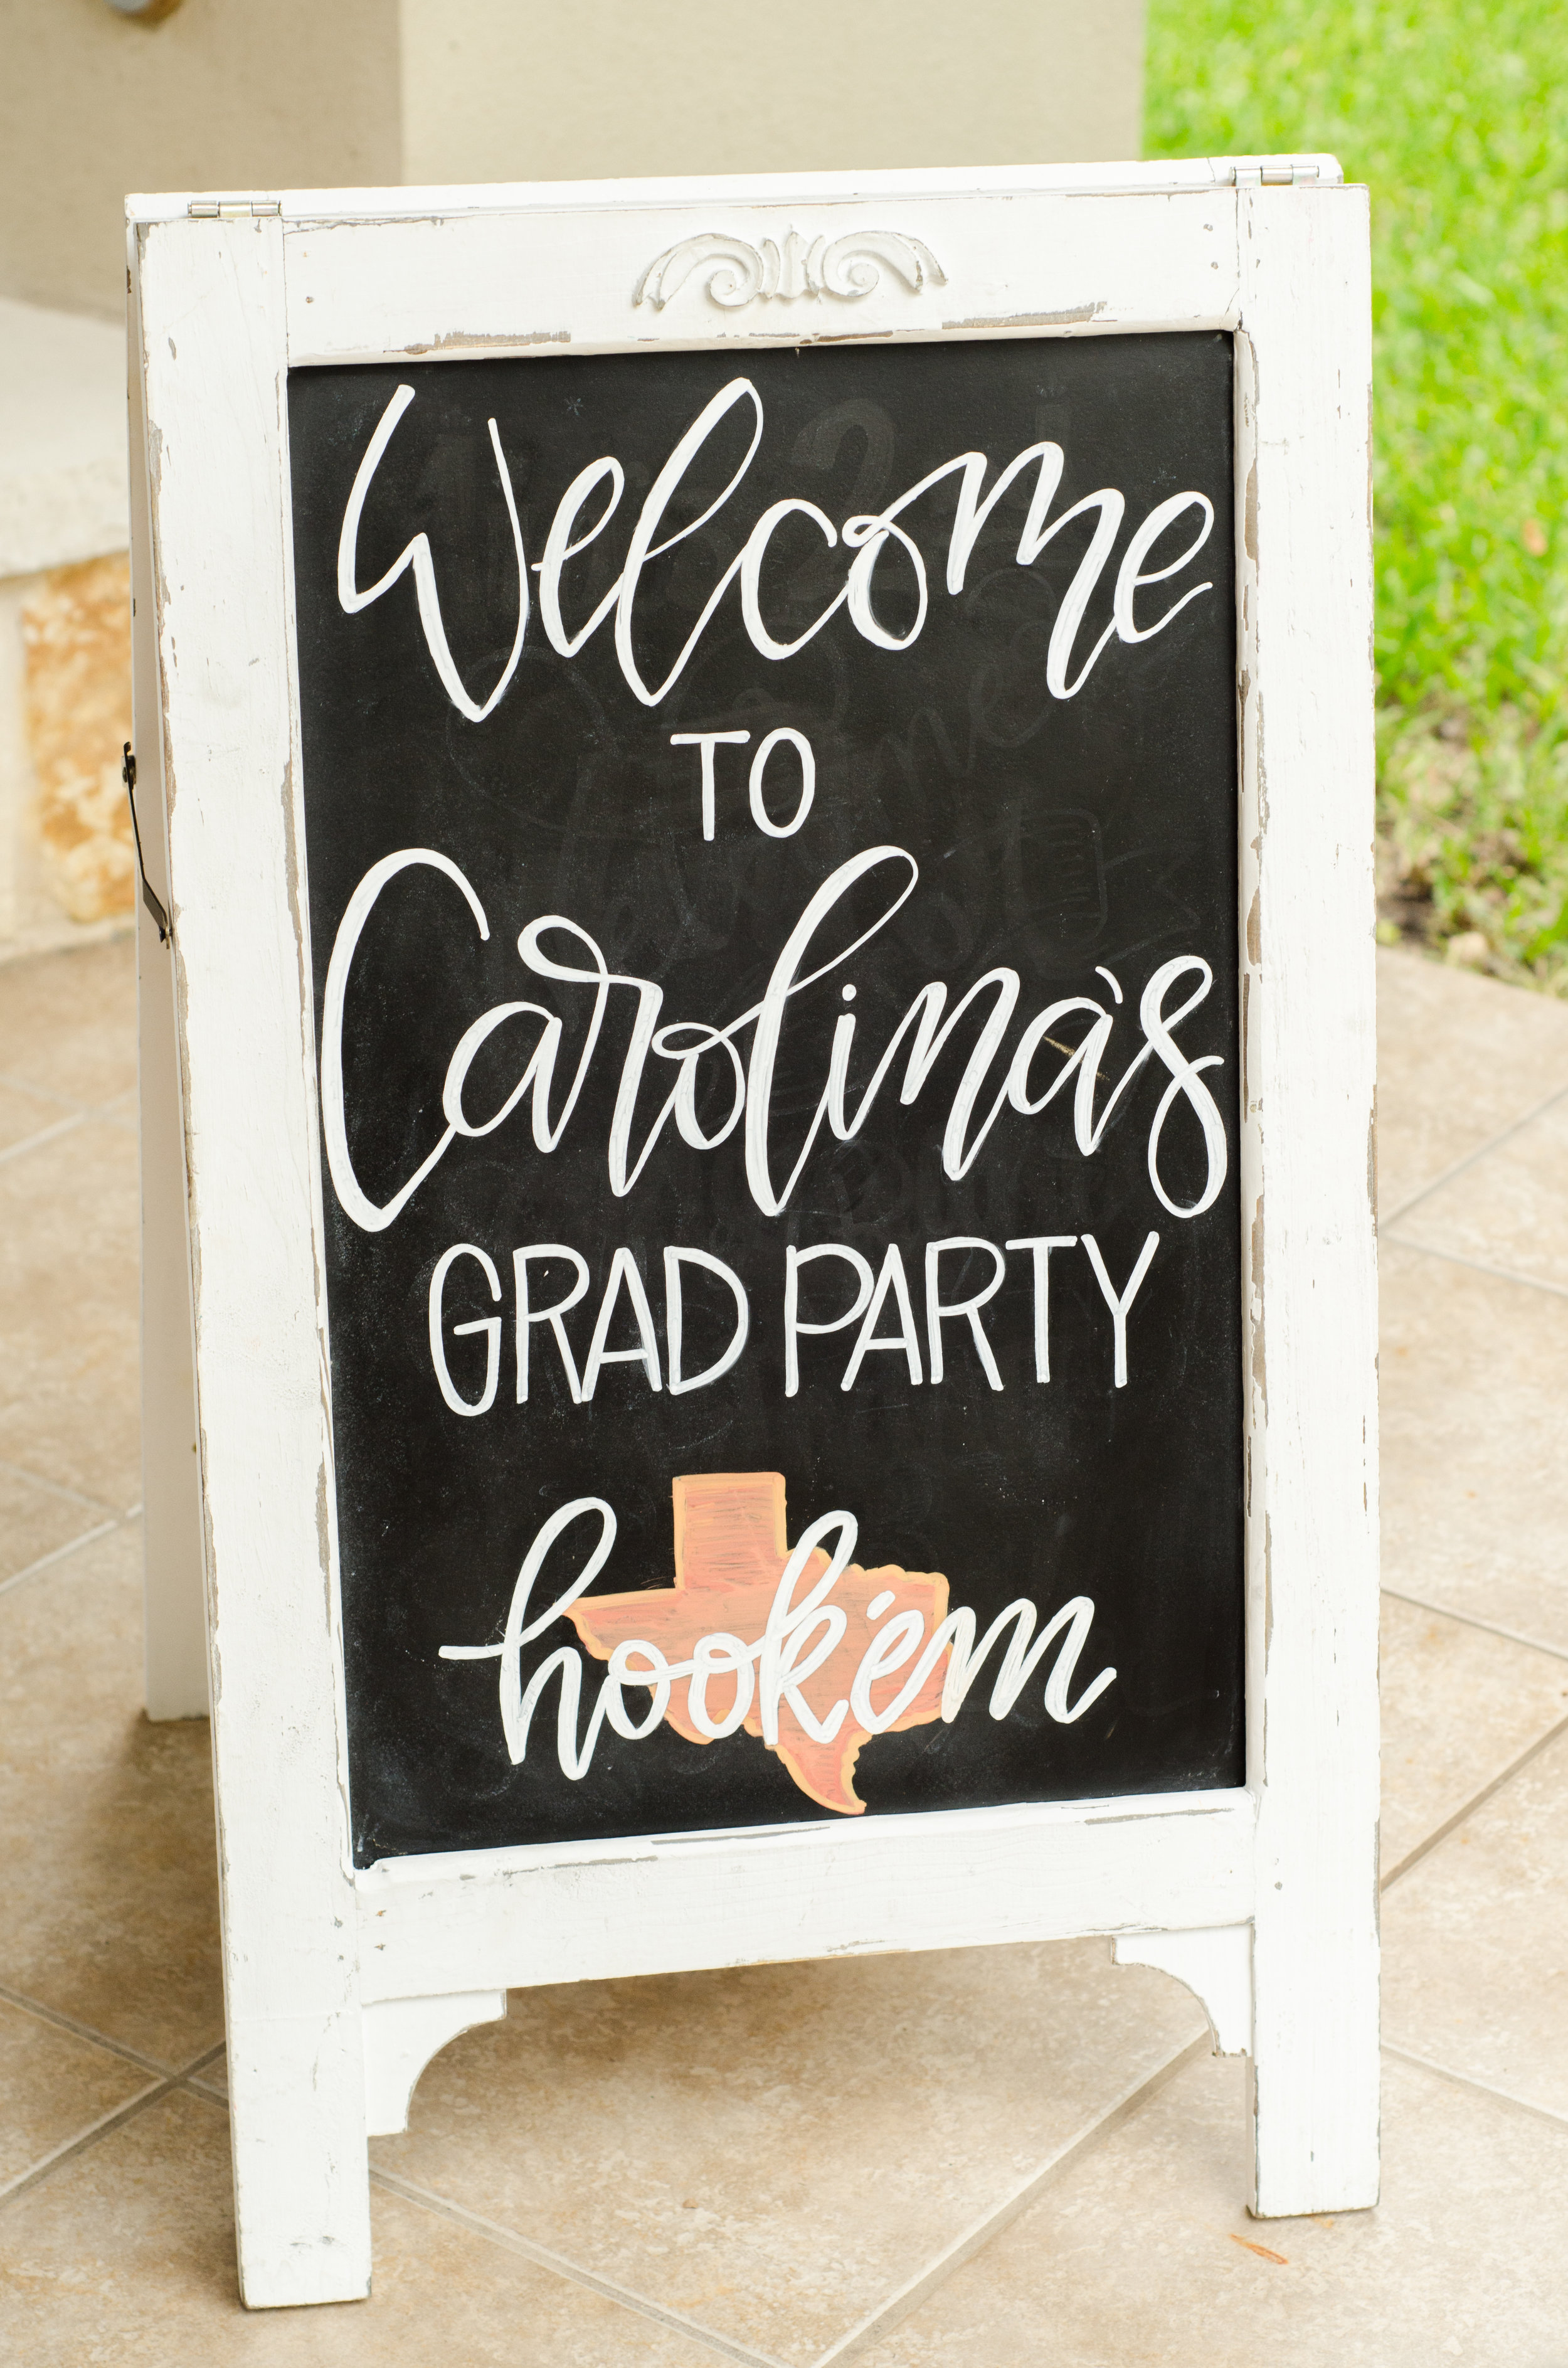 Hand-lettering is always a nice touch at any party! This high school grad party is so fun with a personalized chalkboard welcome sign. See more from this Grad Party on Mint Event Design www.minteventdesign.com #graduationparty #graduationpartyideas #graduation #gradparty #gradpartyideas #chalkboardsigns